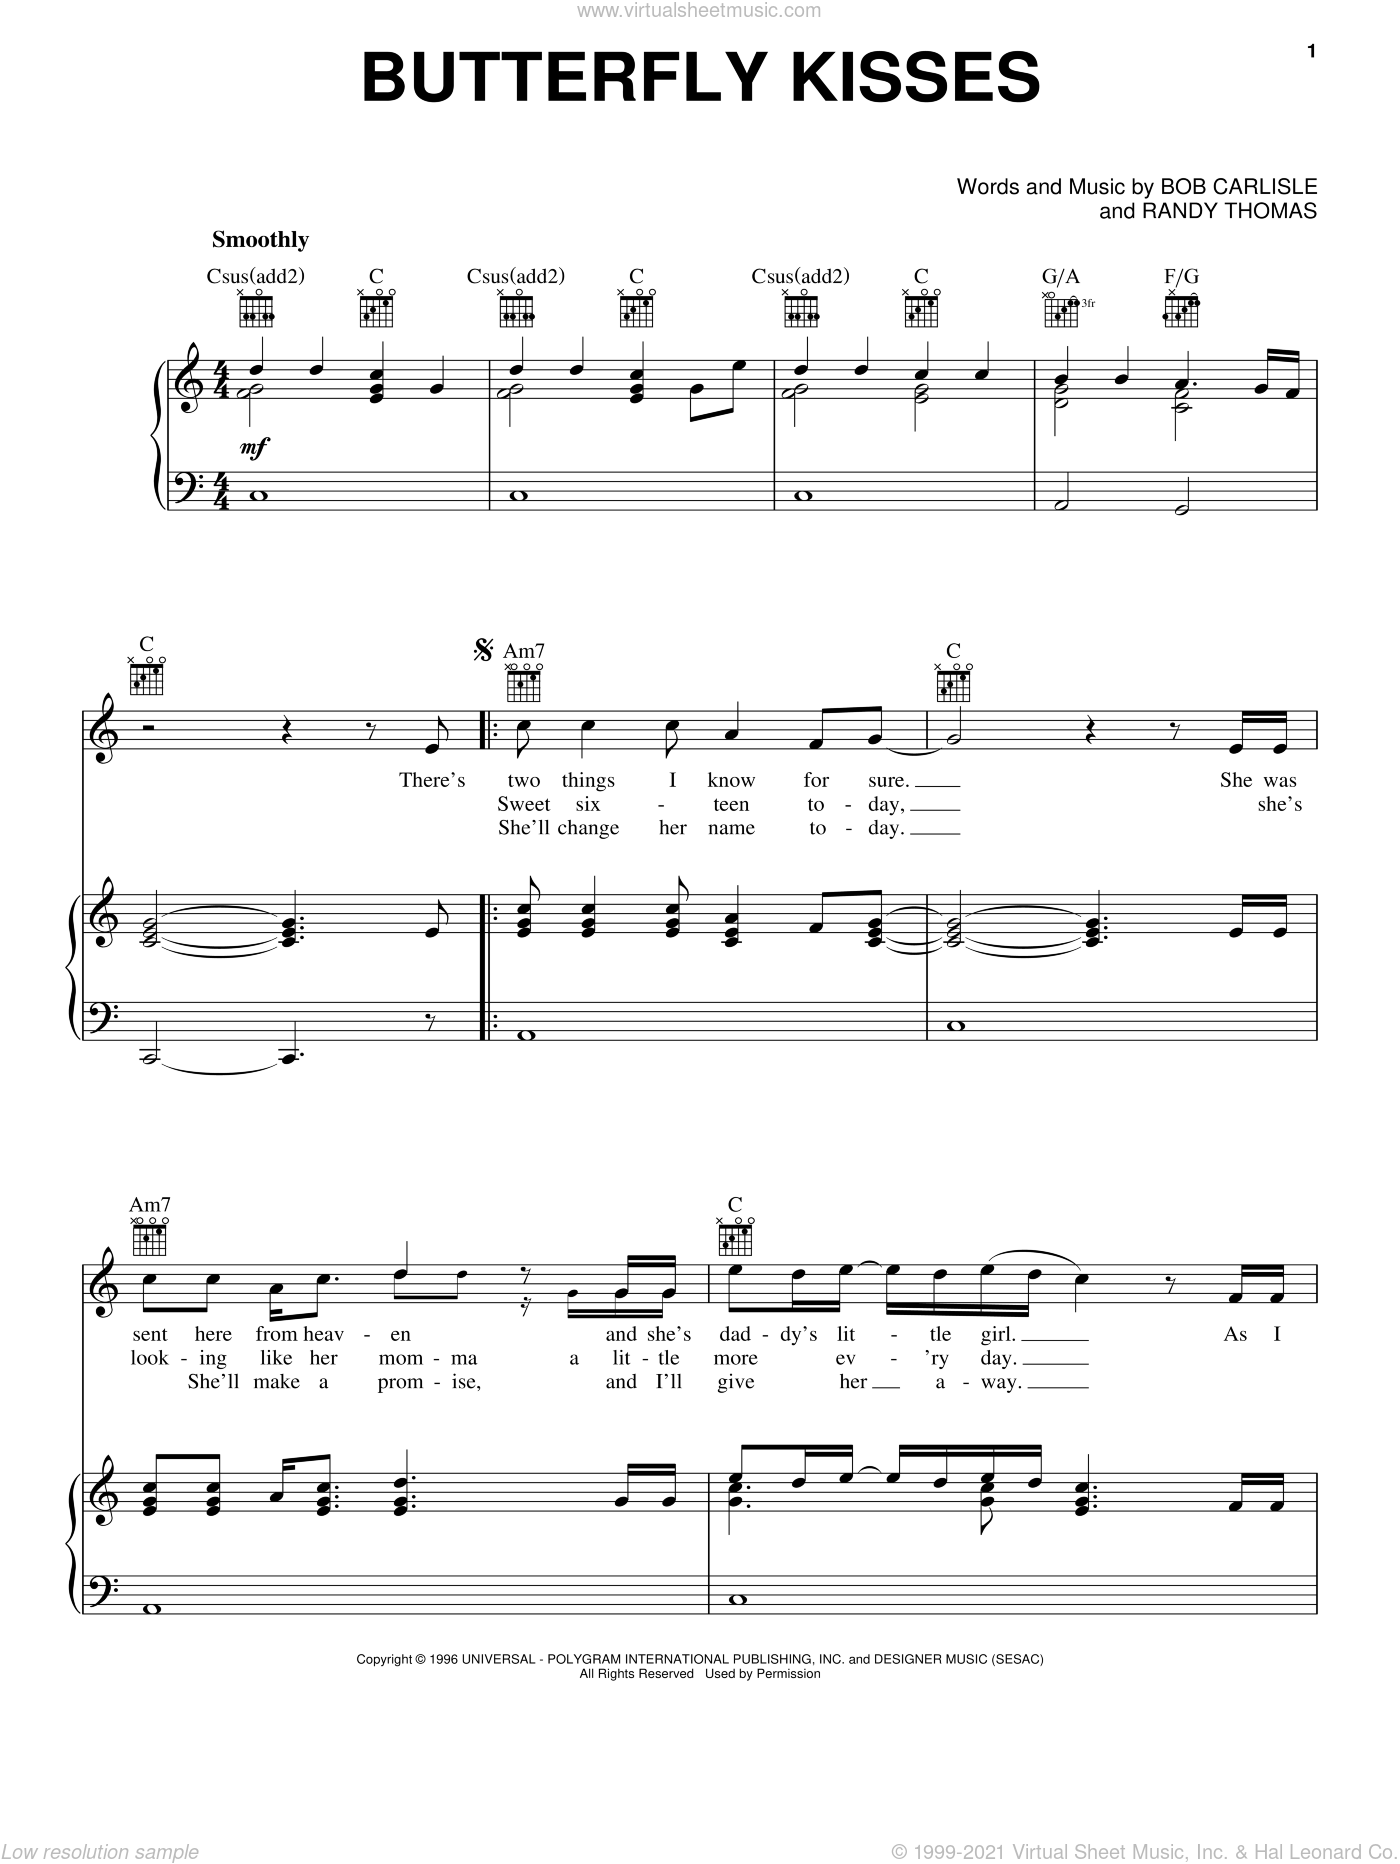 Butterfly Kisses sheet music for voice, piano or guitar by Randy Thomas, Jeff Carson and Bob Carlisle